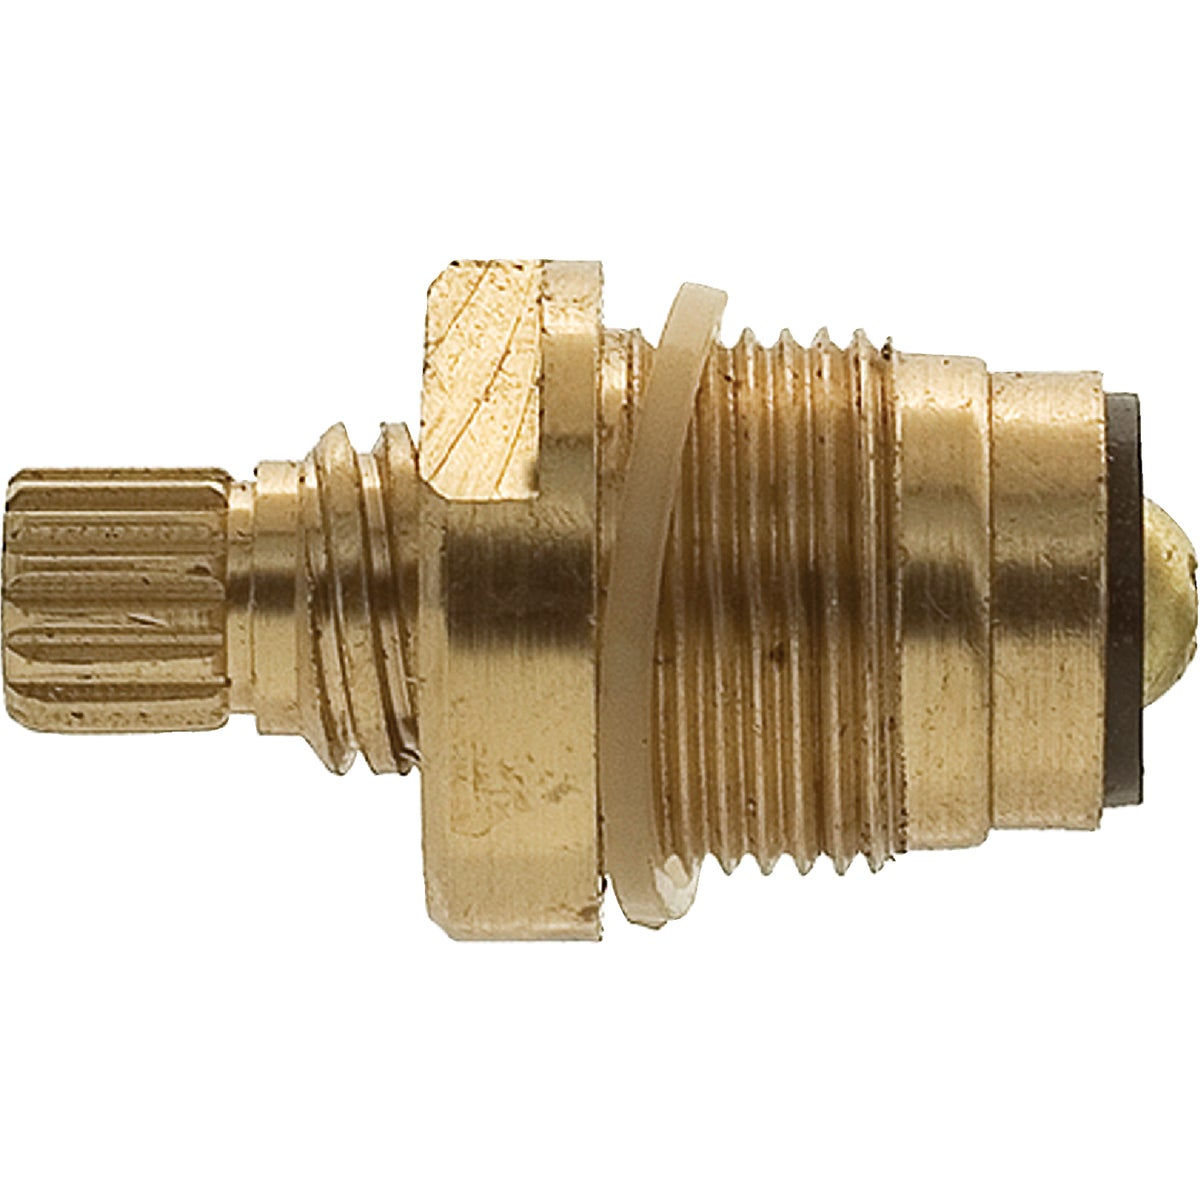 1C-7C CENTRAL BRASS STEM - 15084E by Danco Perfect Match